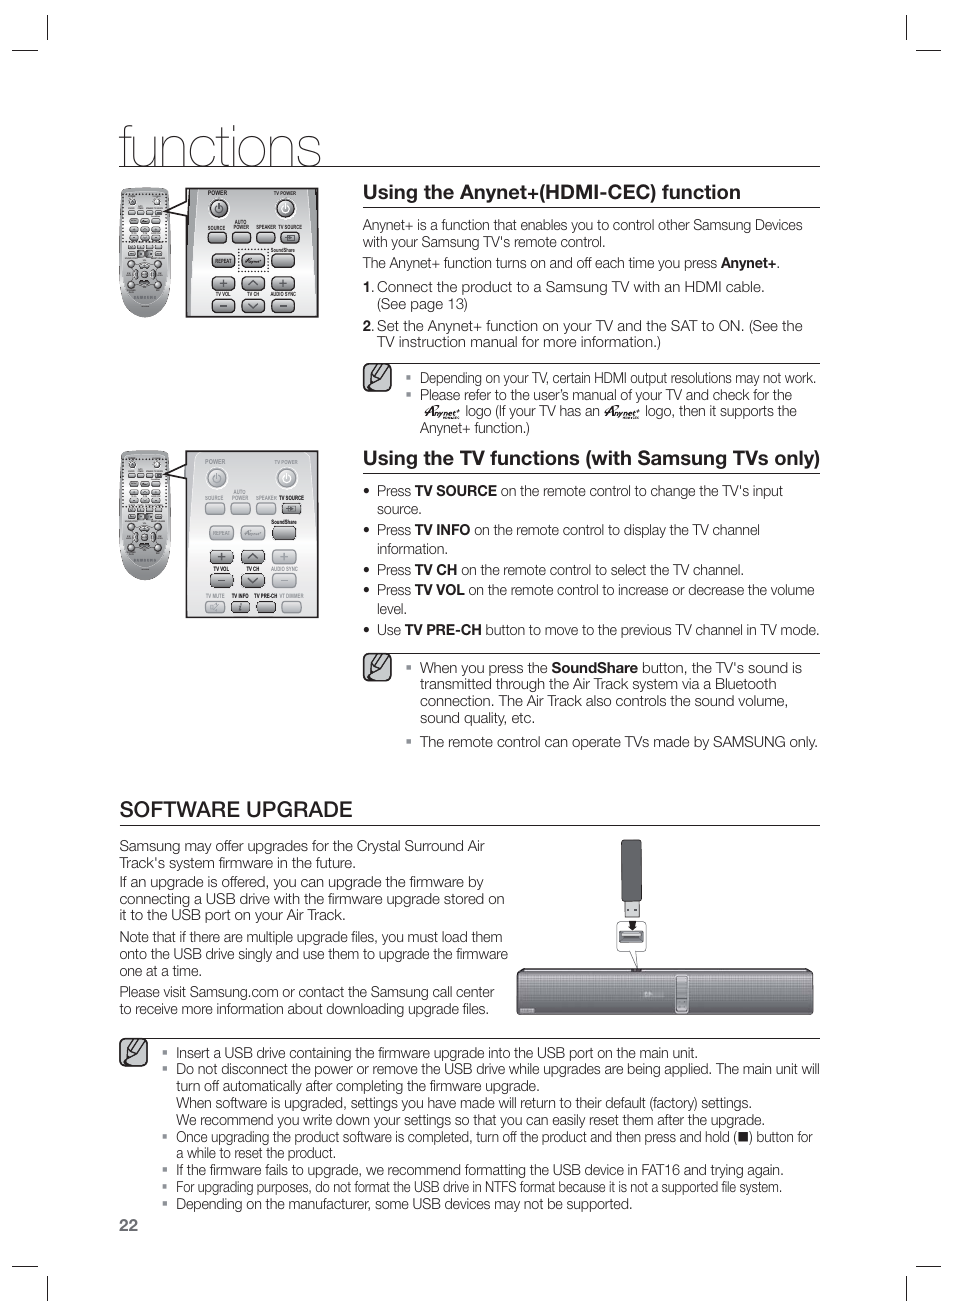 Functions, Software upgrade, Using the anynet+(hdmi-cec